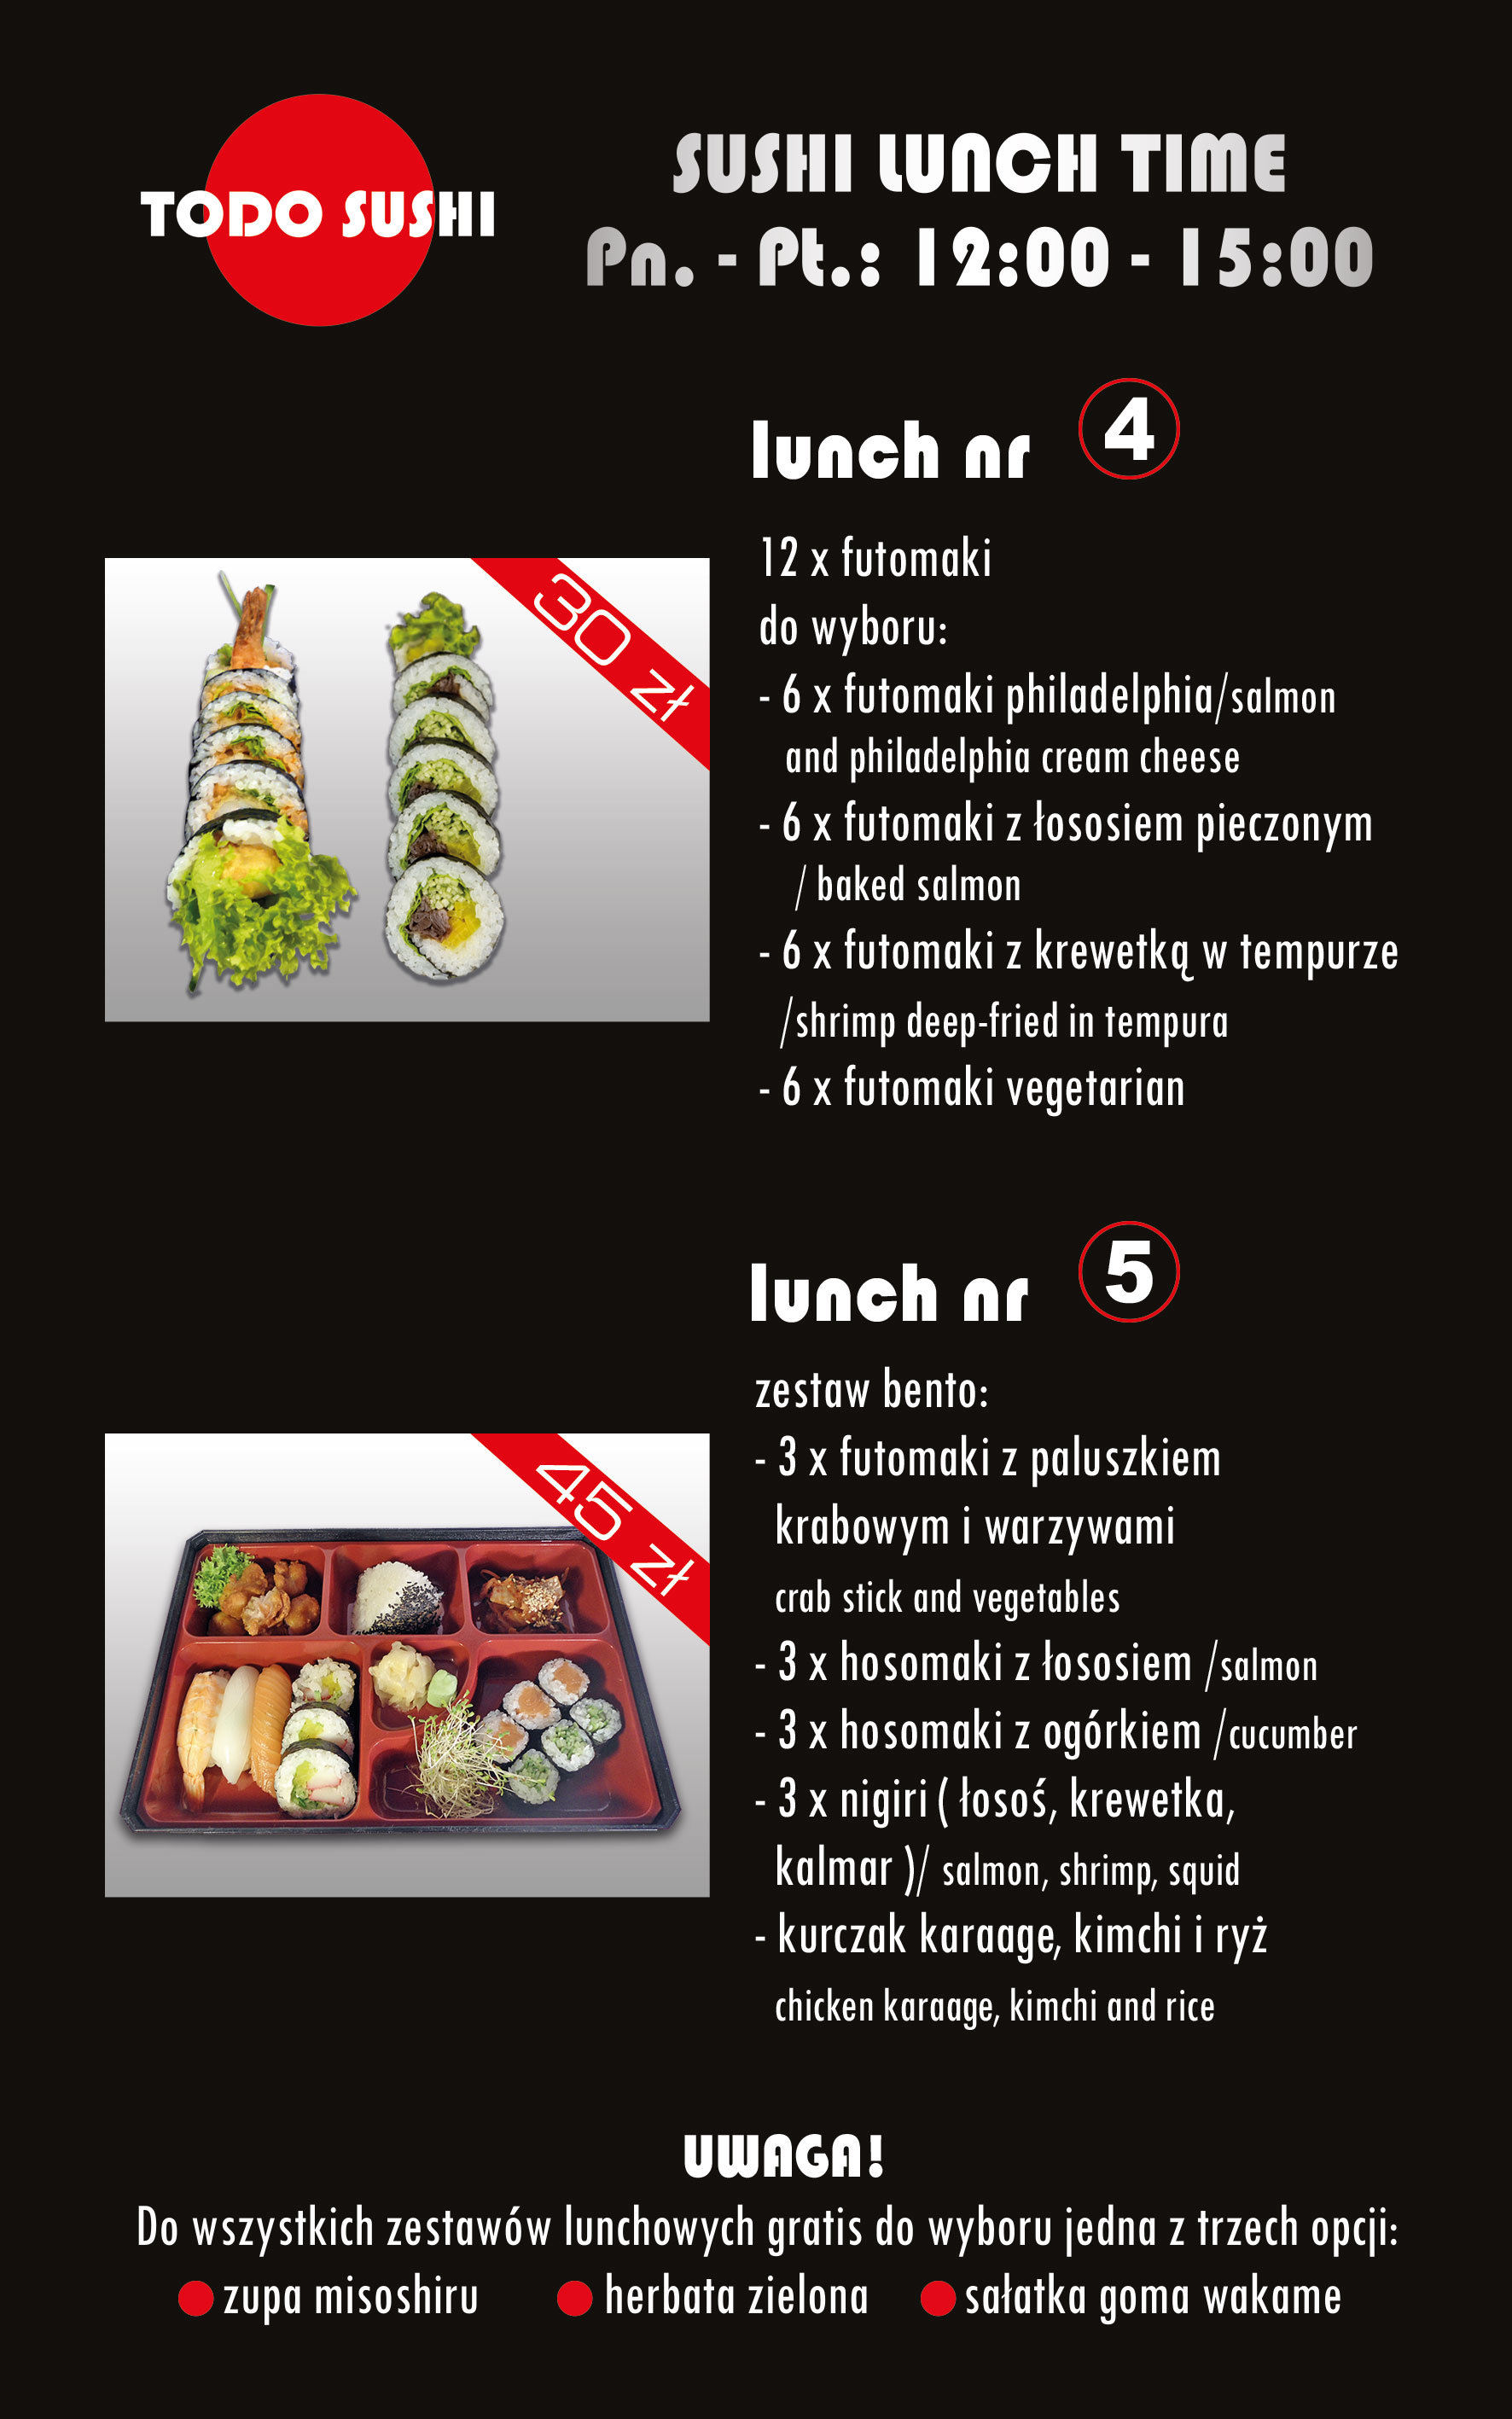 Todo Sushi Lunch